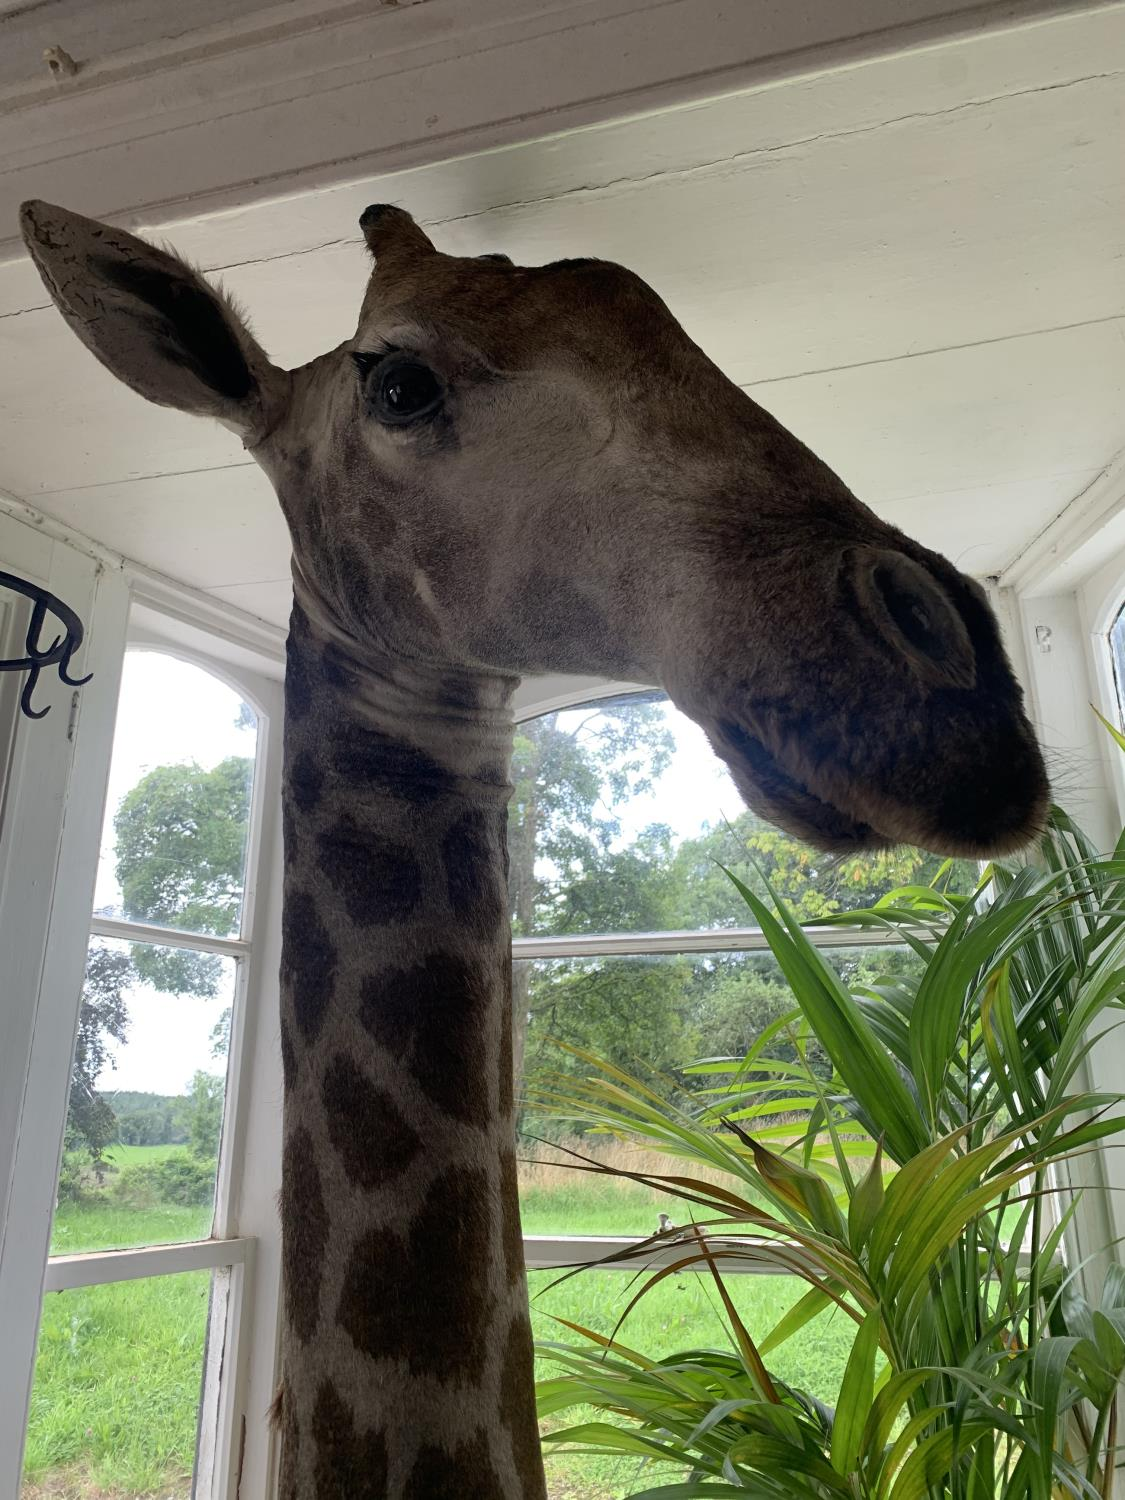 Shoulder and head taxidermy giraffe. - Image 2 of 5